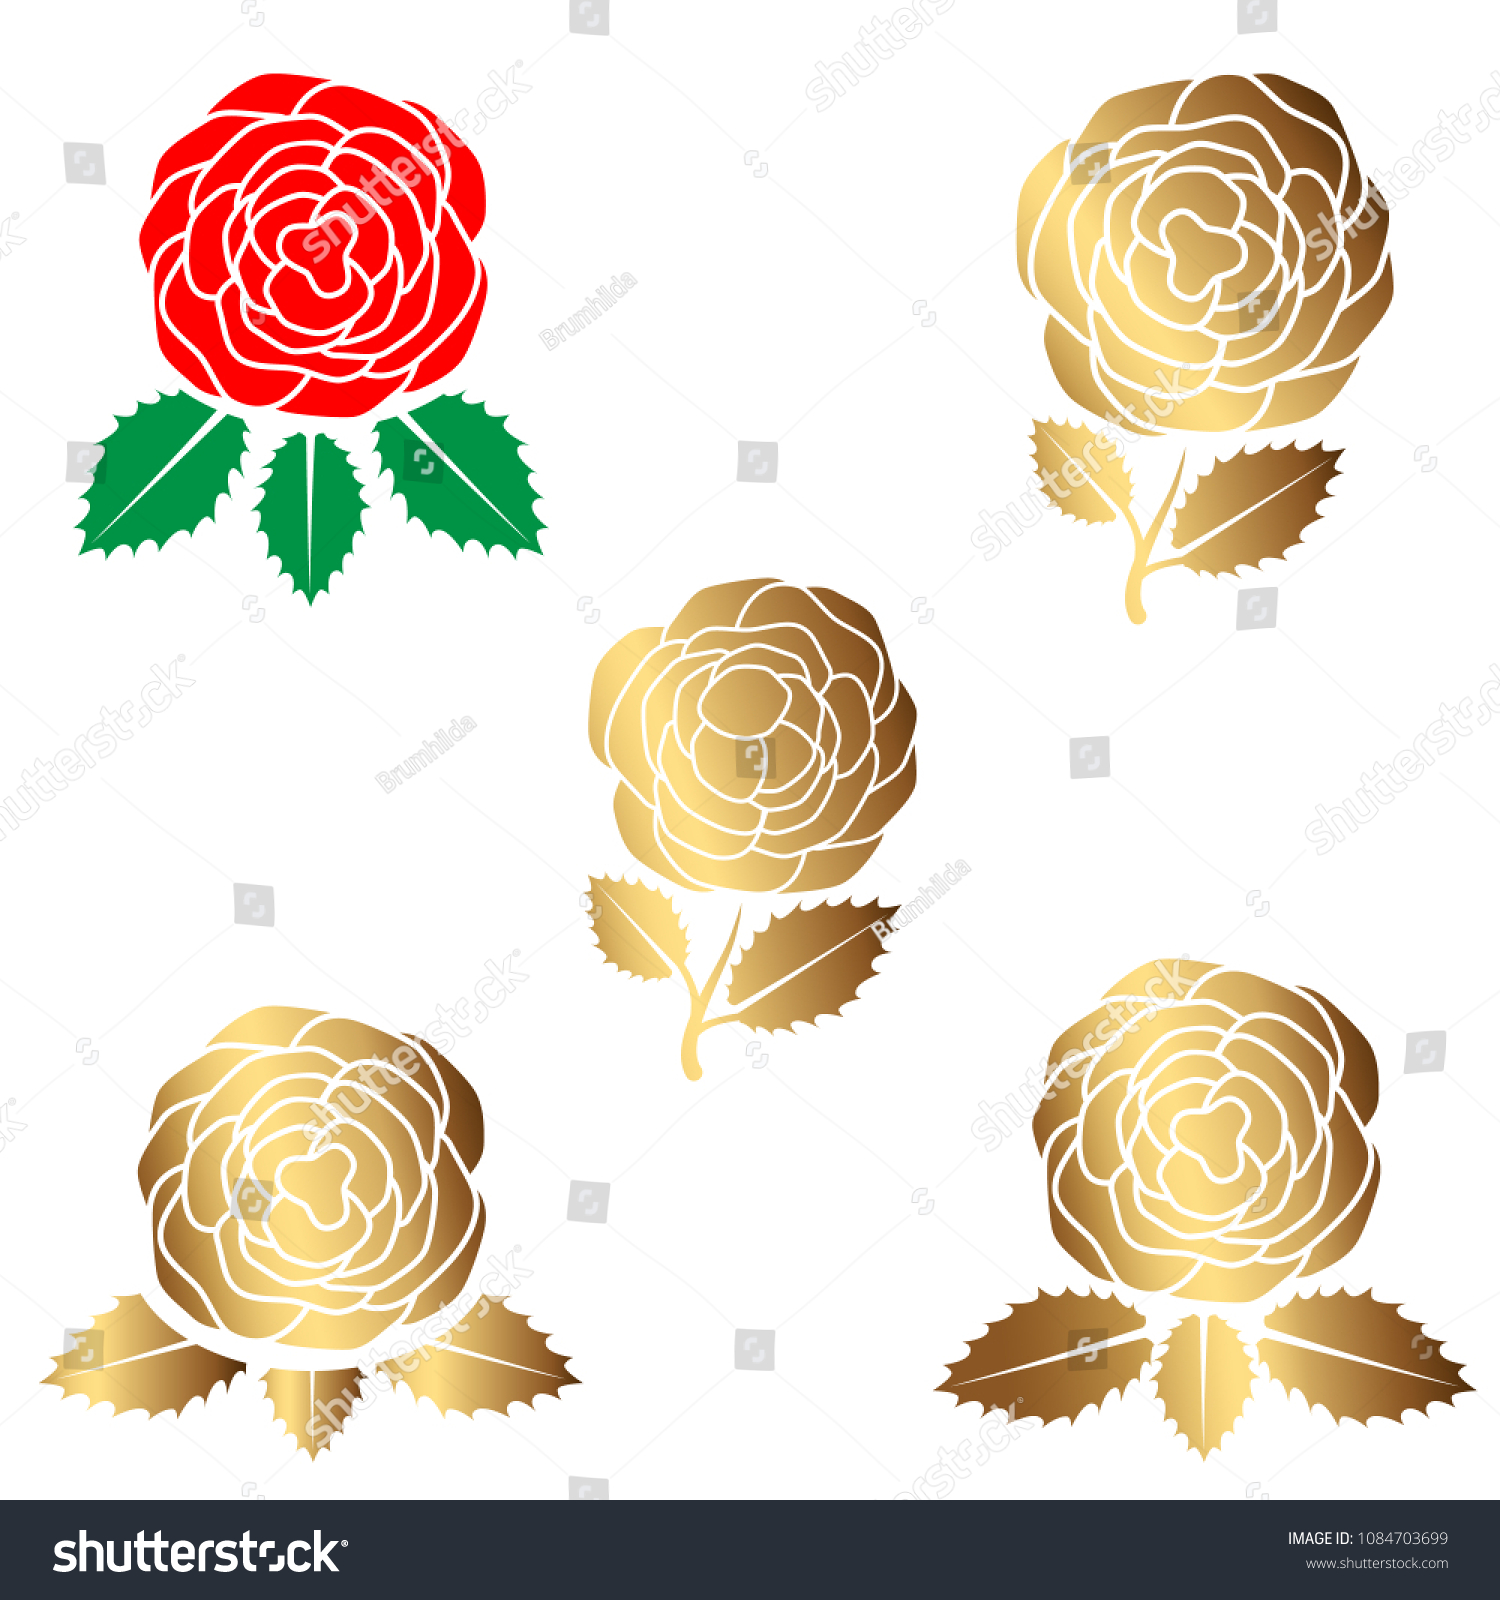 Beauty rose logo sign symbol beauty stock vector royalty free beauty rose logo sign symbol for beauty salon beauty shop spa salon izmirmasajfo